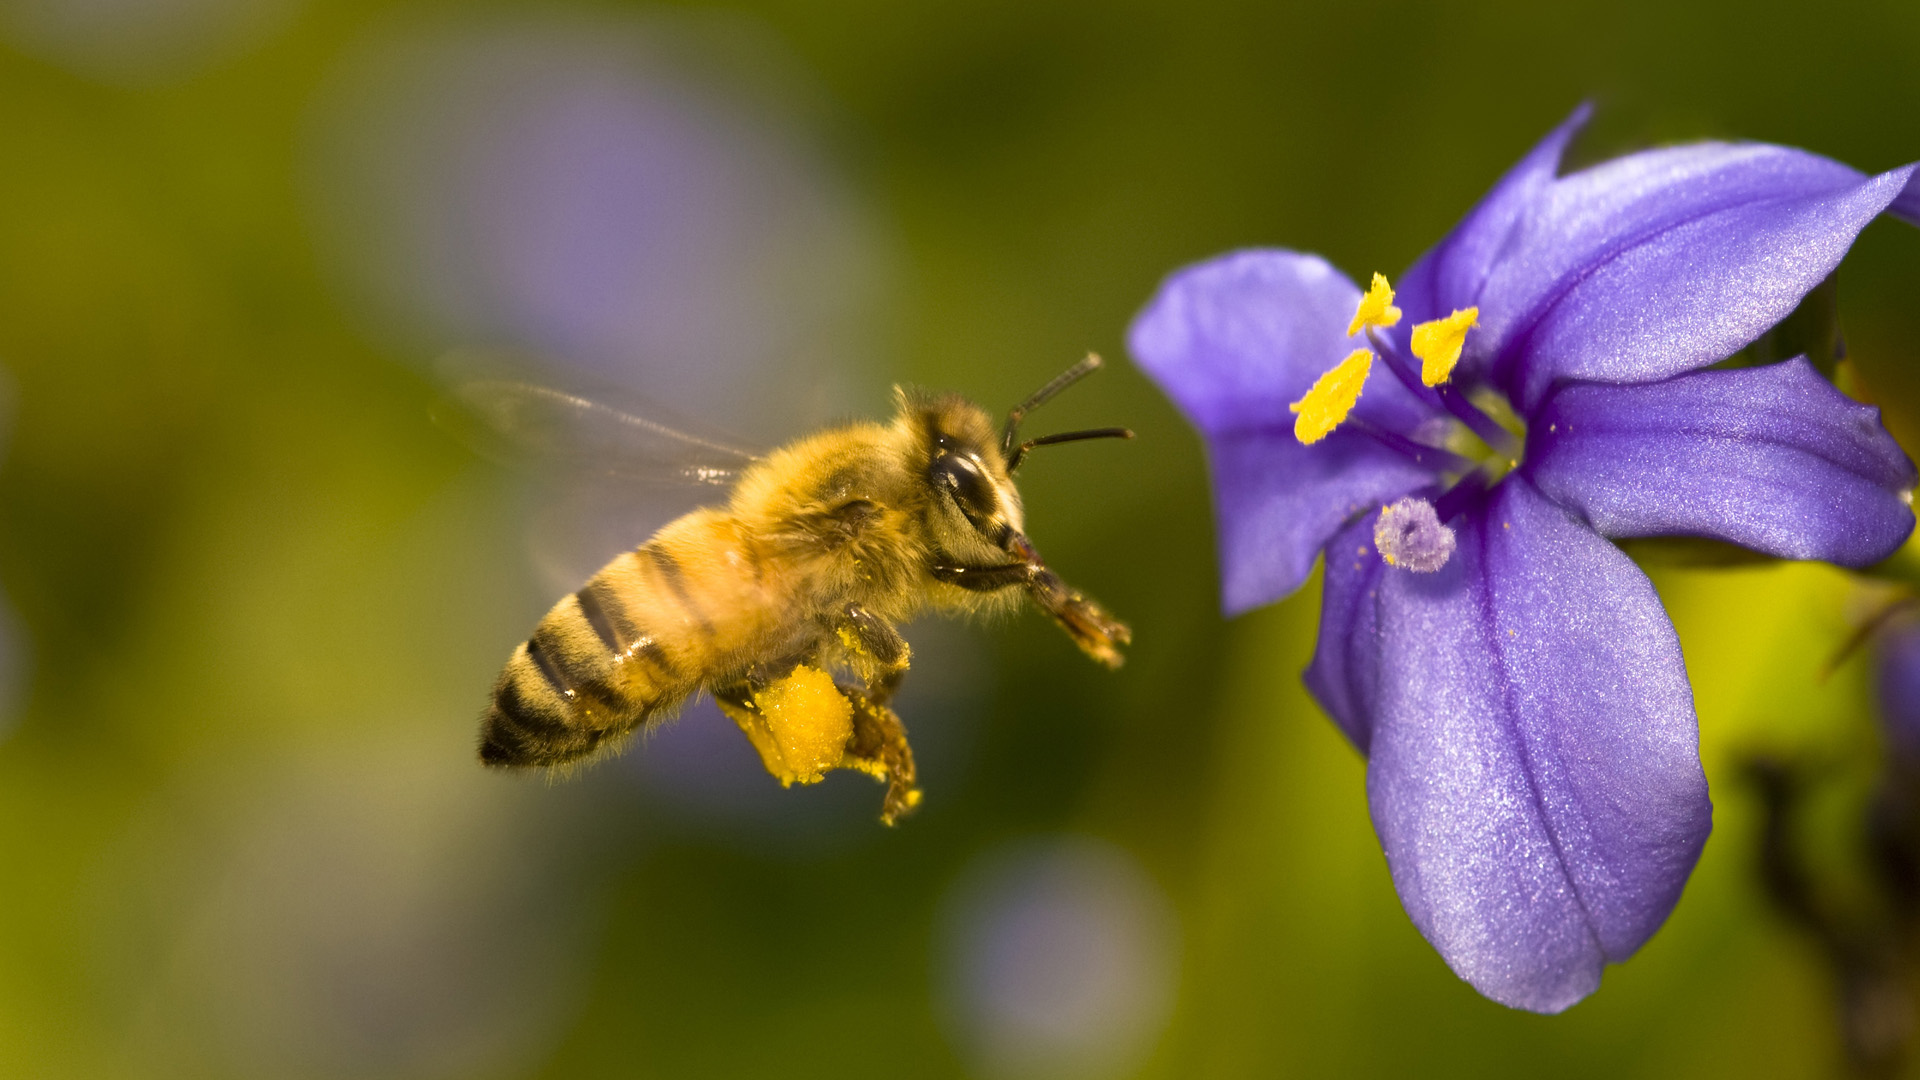 Honey bee hovering near blue-eyed grass flower